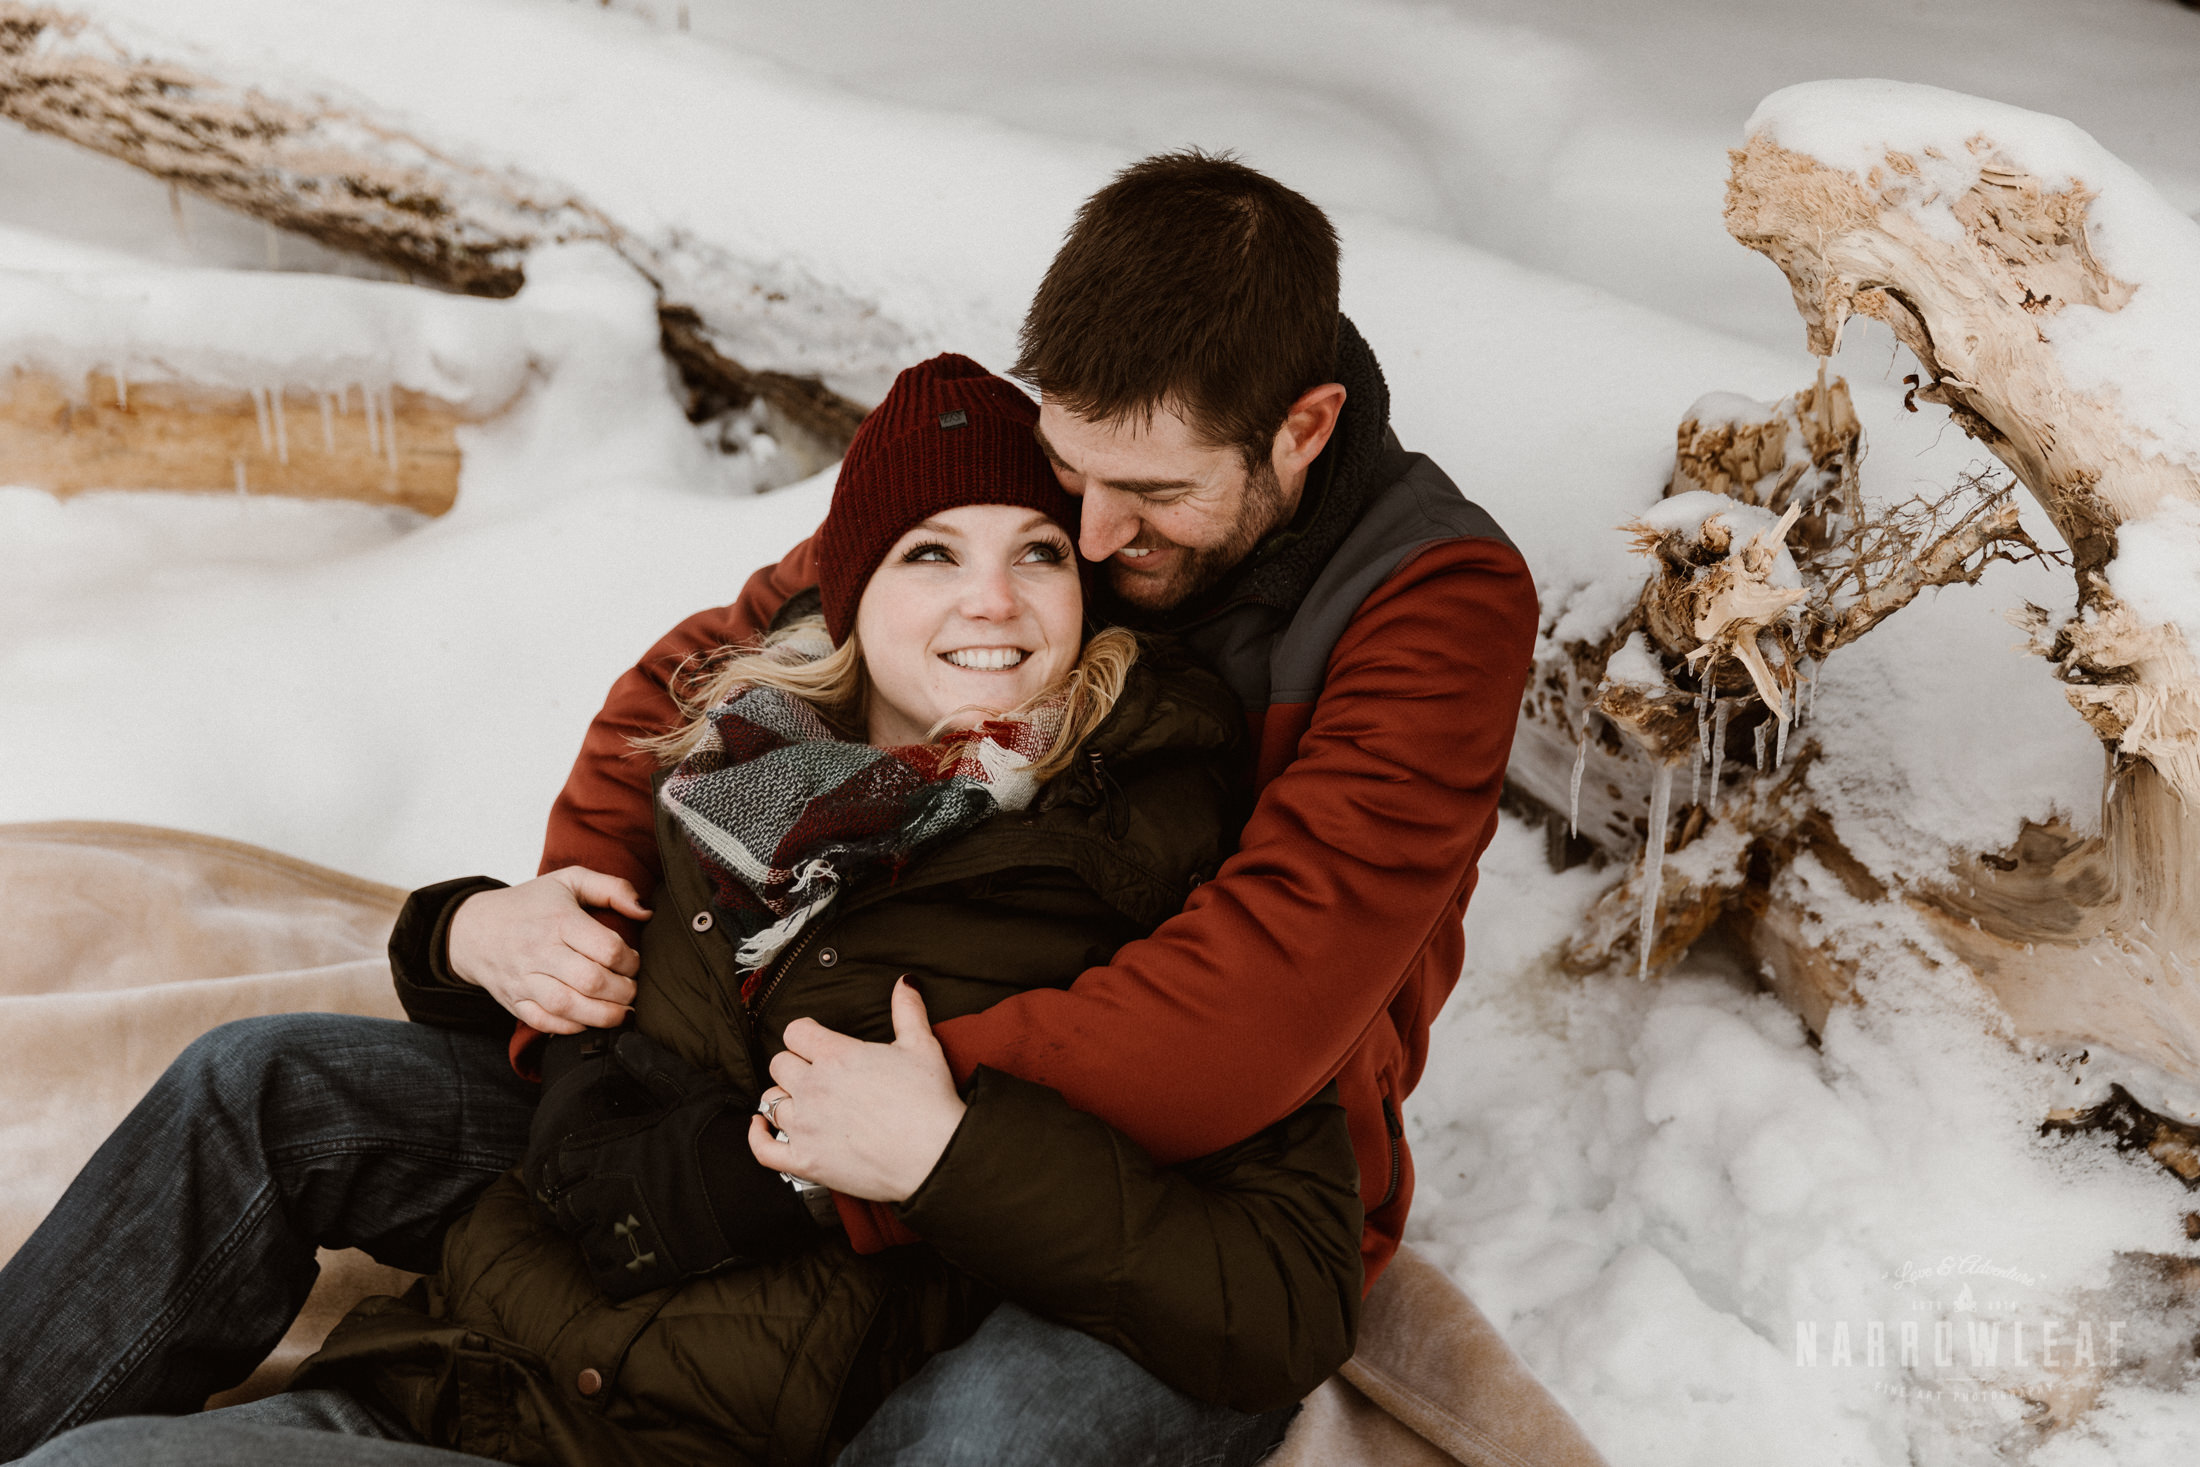 North-Shore-Minnesota-winter-Engagement-photos-Narrowleaf-Adventure-Photography-9426.jpg